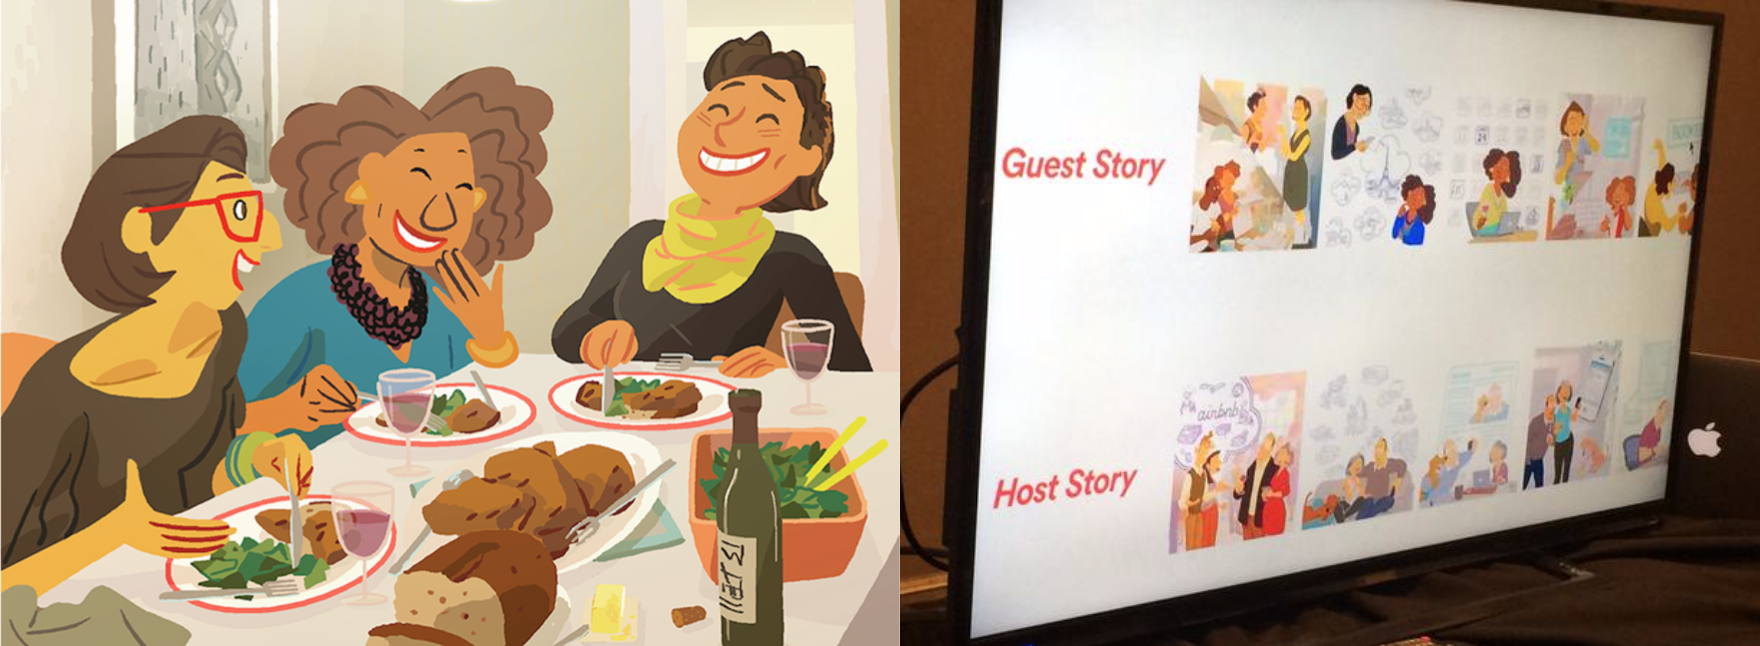 Airbnb storyboards by Pixar animator Nick Sung. Notice that two stories are shown here: one from the point of view of the guest, and one from that of the host.